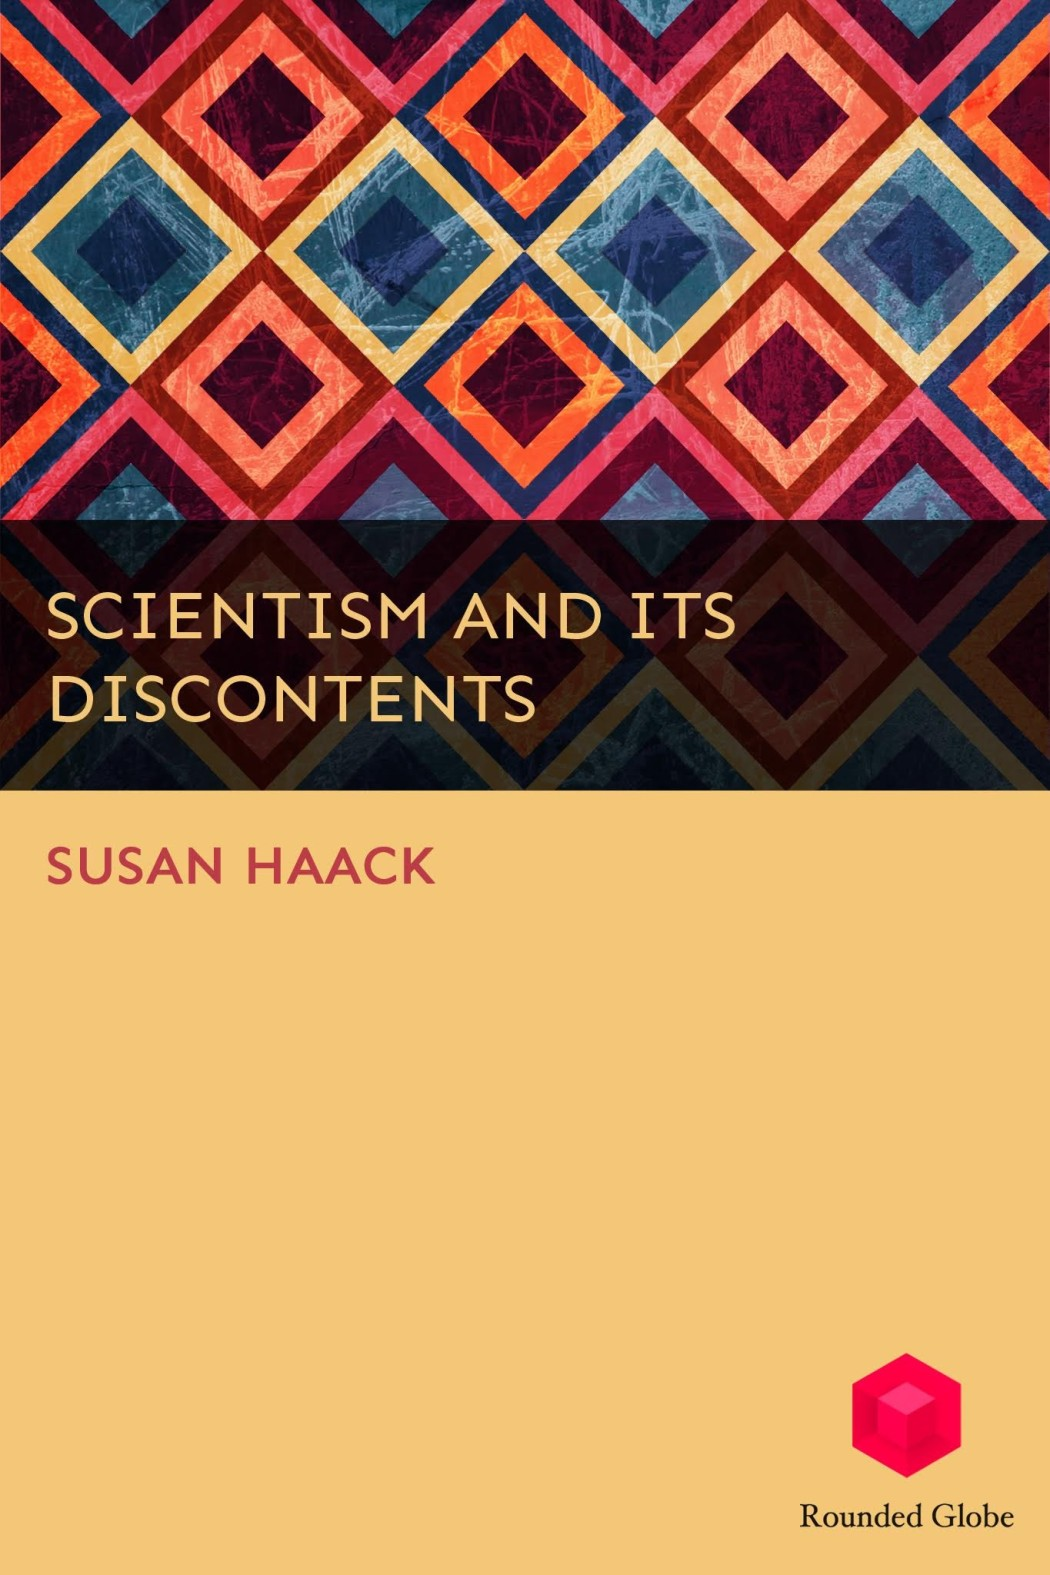 SusanHaack_ScientismDiscontents_05f47_large